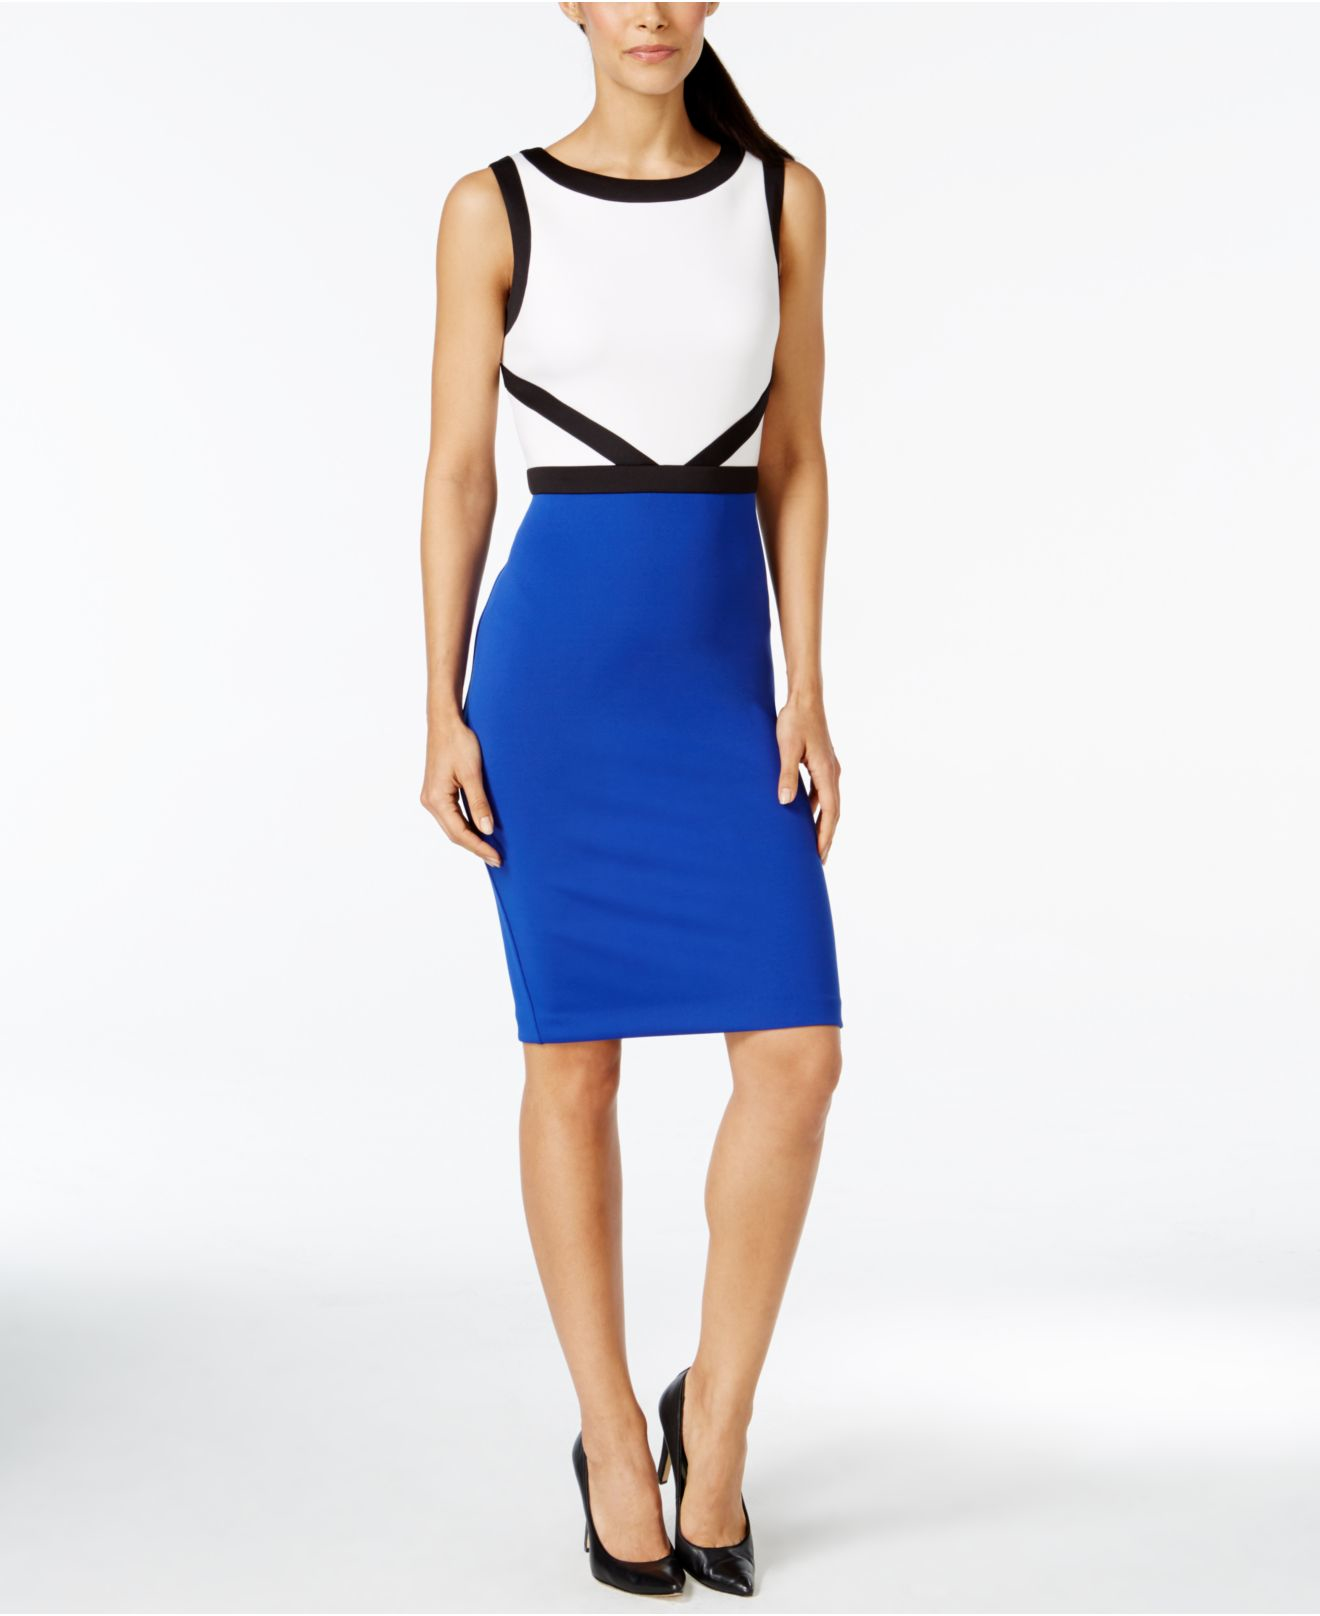 e5f44d9cb1c Calvin Klein Blue Dress - Collections Blue Images